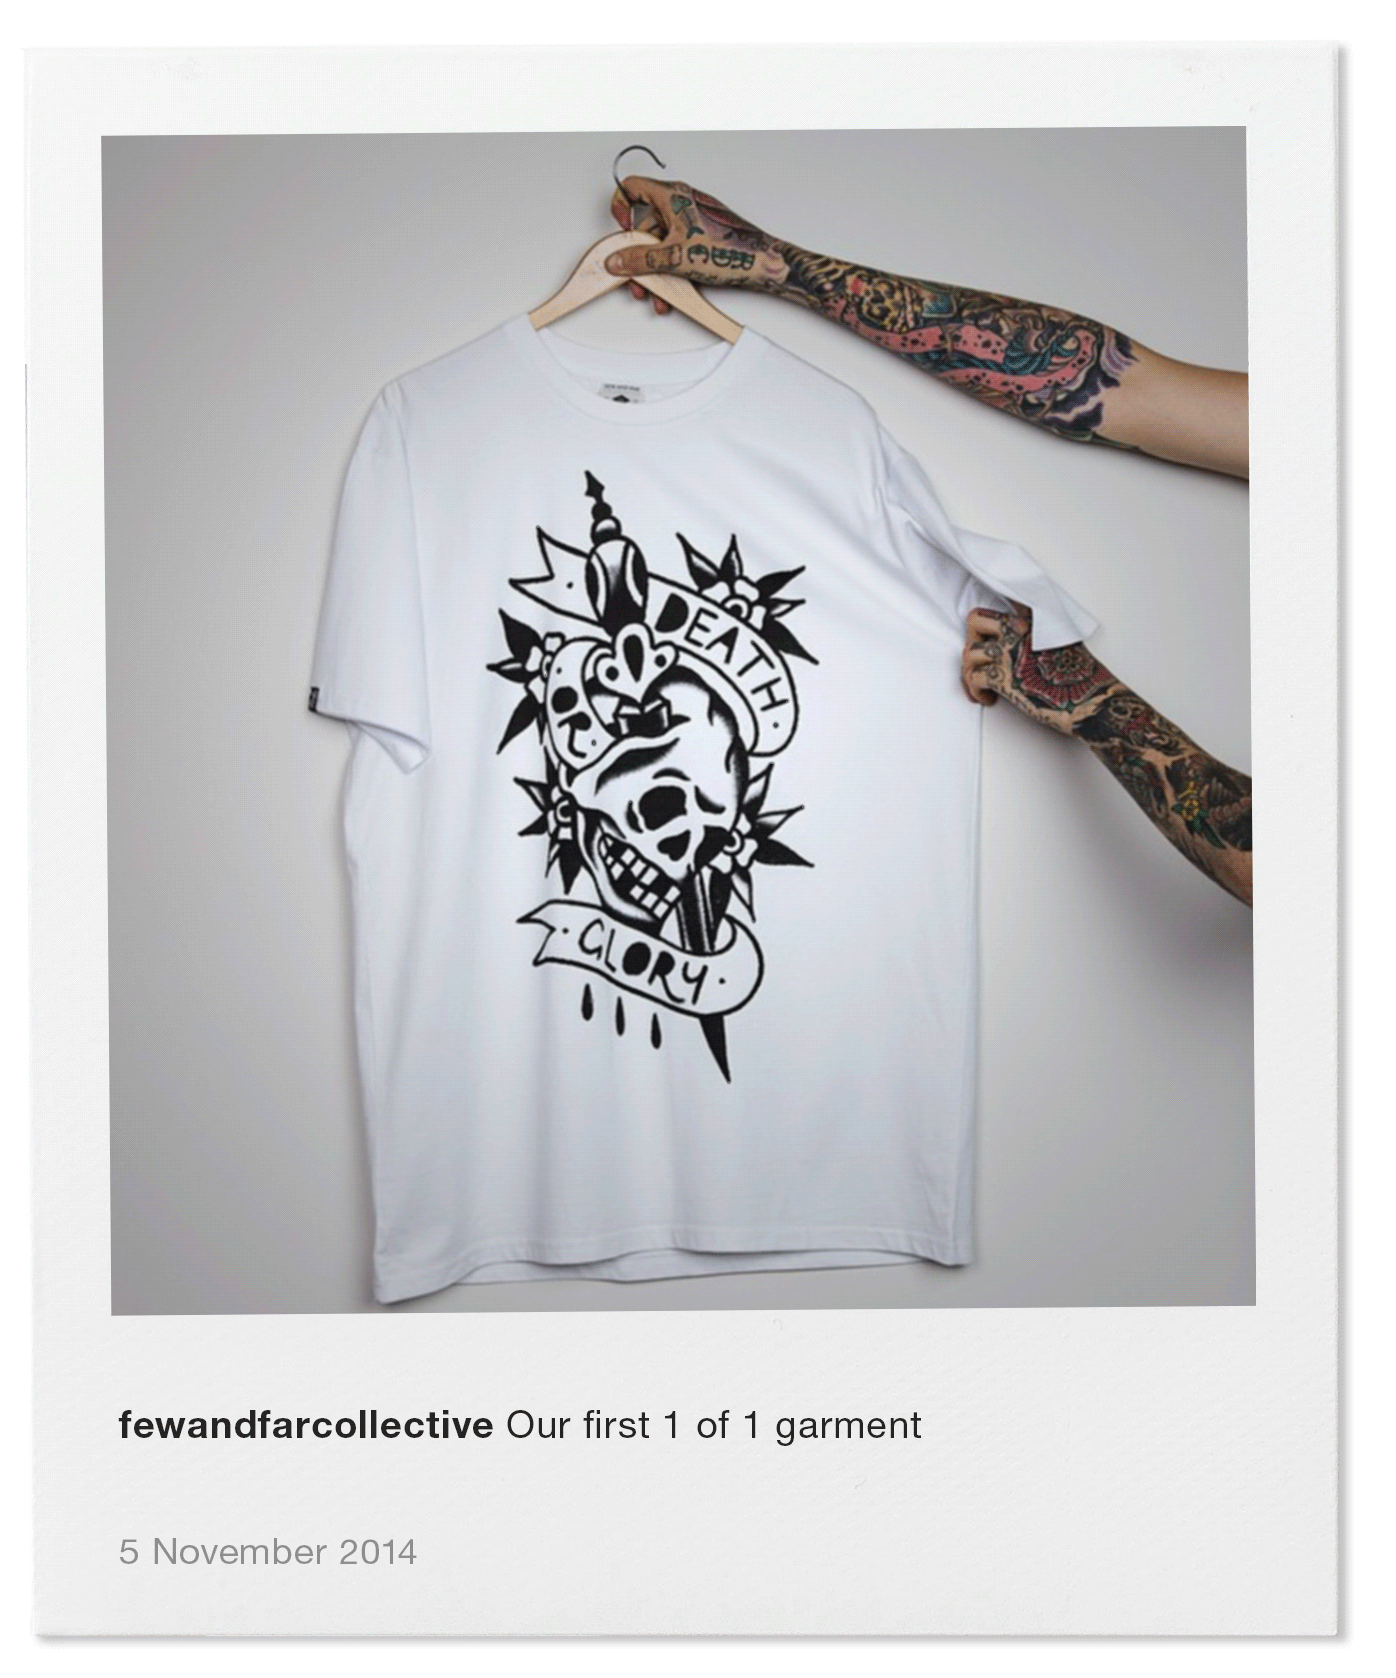 Our first 1 of 1 garment